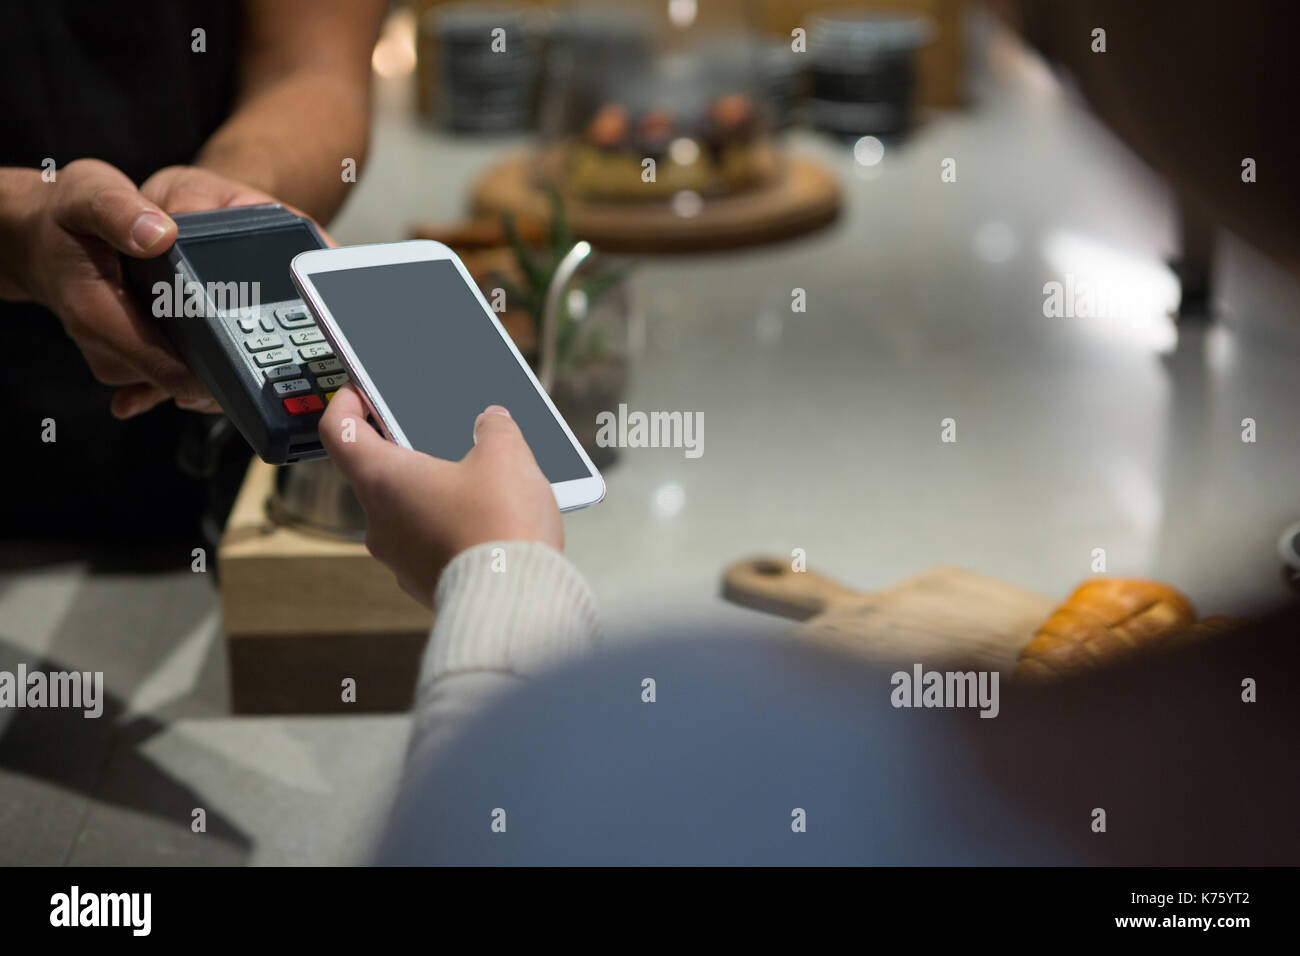 Woman paying bill through smartphone using NFC technology in restaurant Stock Photo